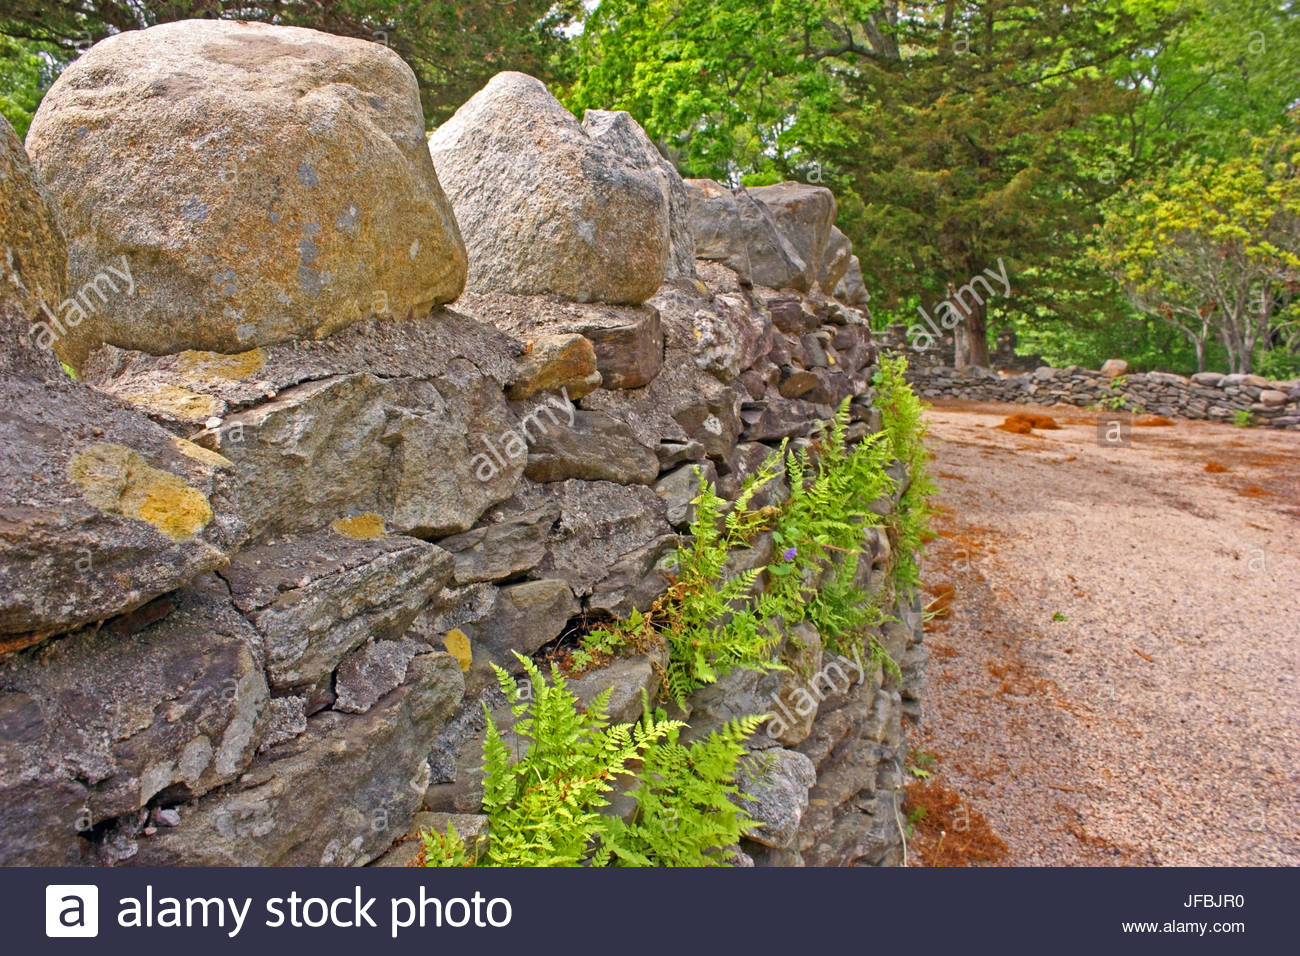 A stone wall with ferns borders the entrance road to Gillette Castle State Park. - Stock Image